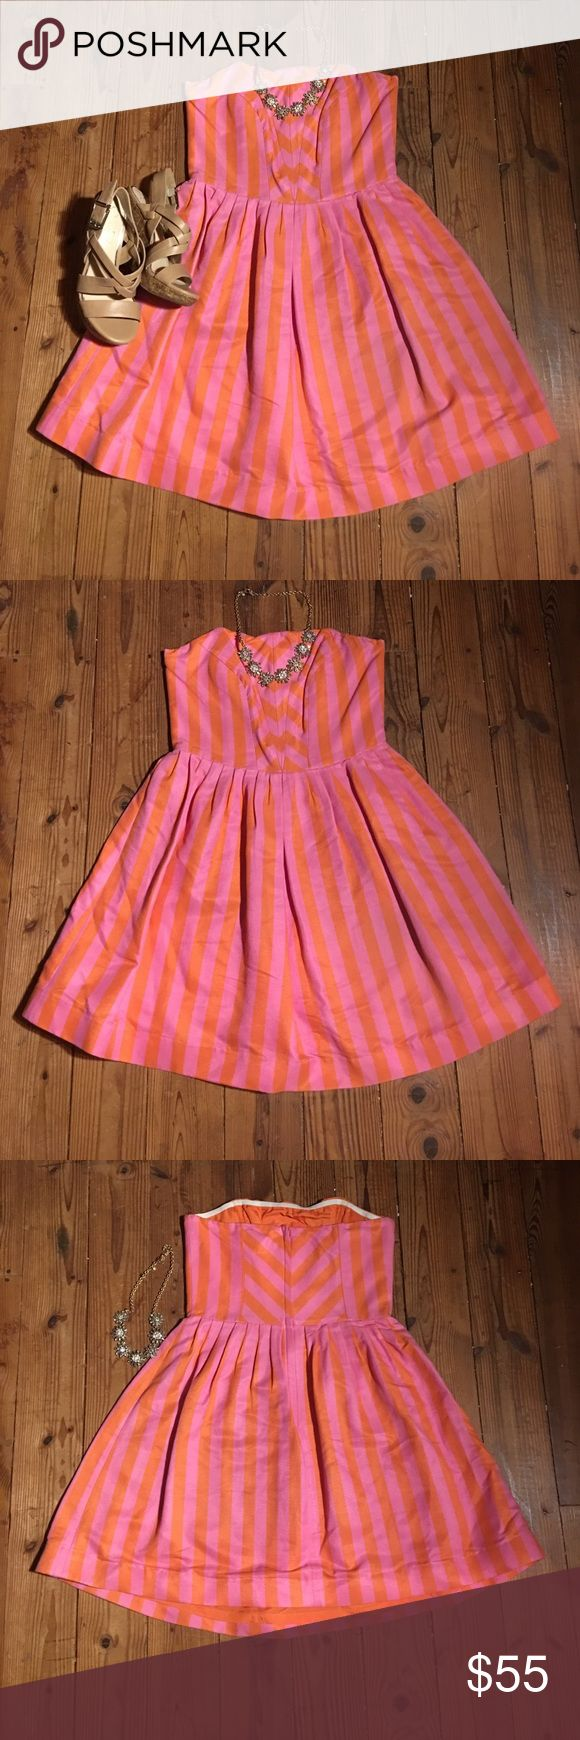 Lilly Pulitzer party dress Stay classy with your new party dress. Pink and orange stripped Lilly Pulitzer dress has only been worn once. Perfect for any occasion from Carolina cup to a cocktail party. You can never go wrong with Lilly. Lilly Pulitzer Dresses Mini